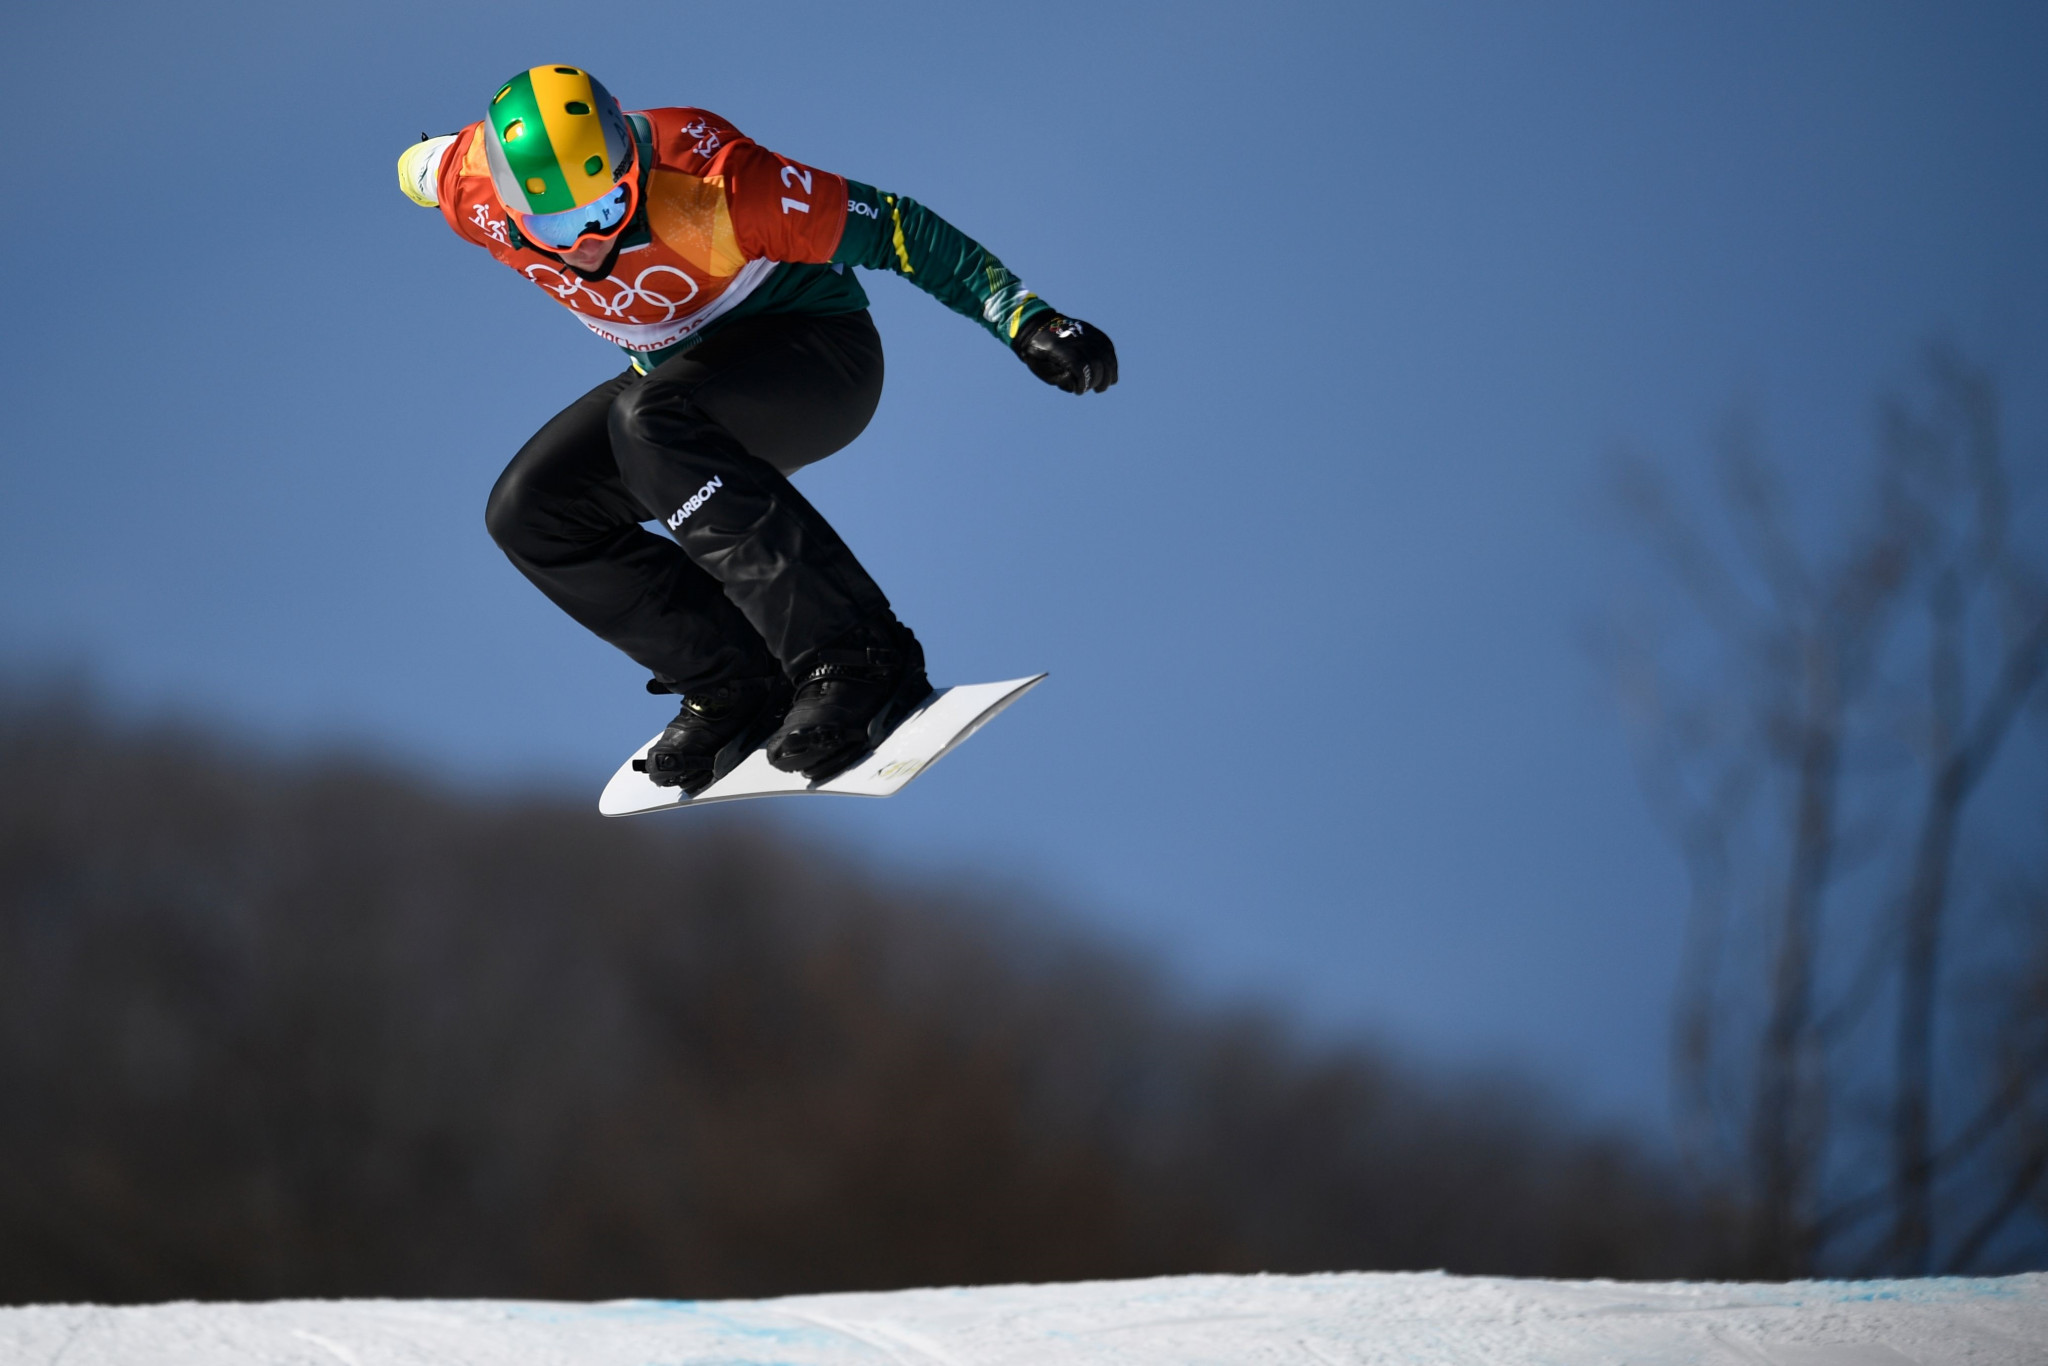 Australia's Jarryd Hughes claimed the silver medal ©Getty Images